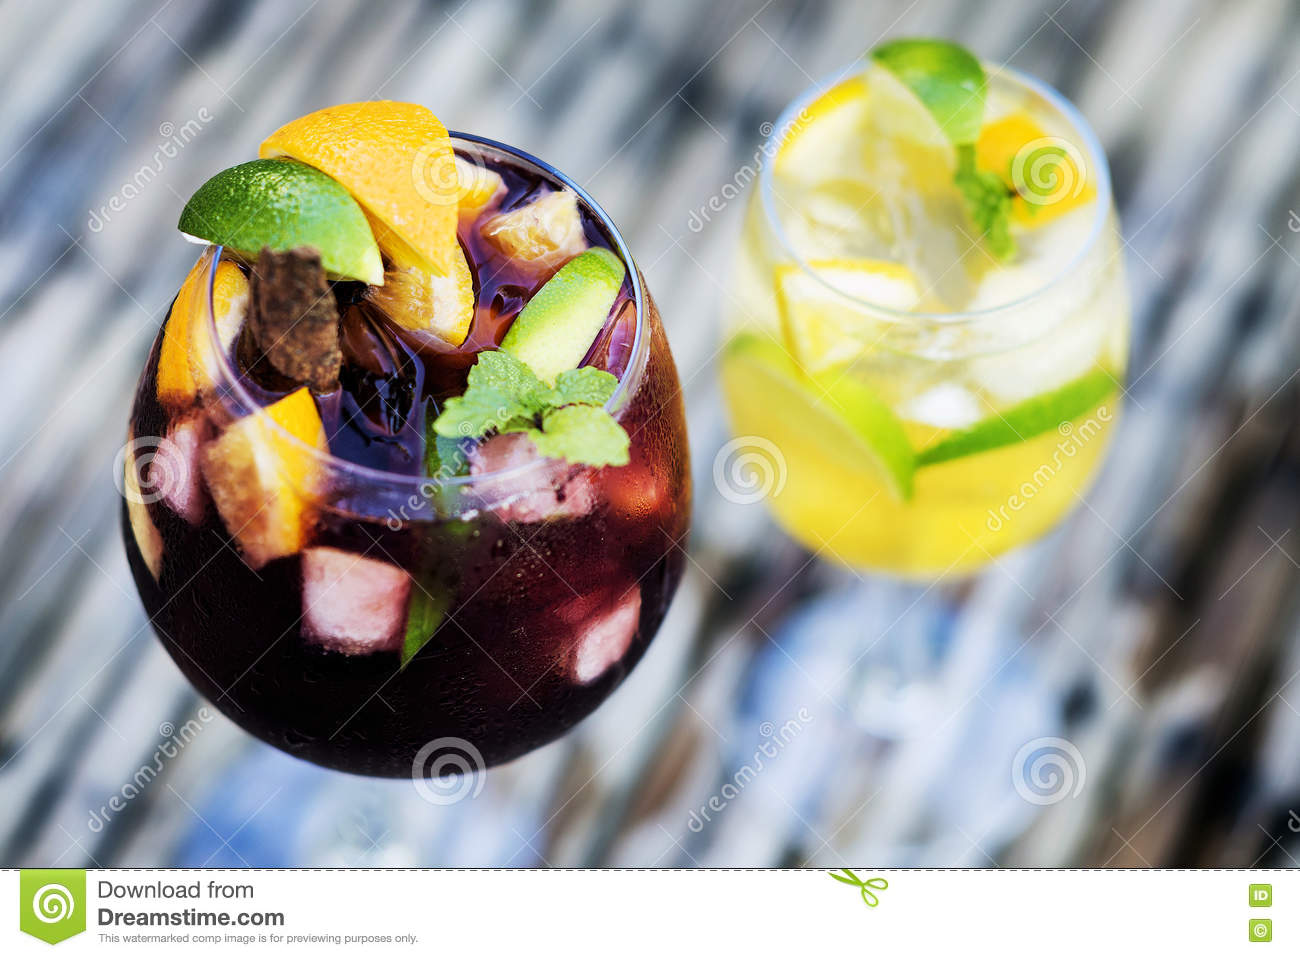 Red and white wine sangria cocktail drinks on table